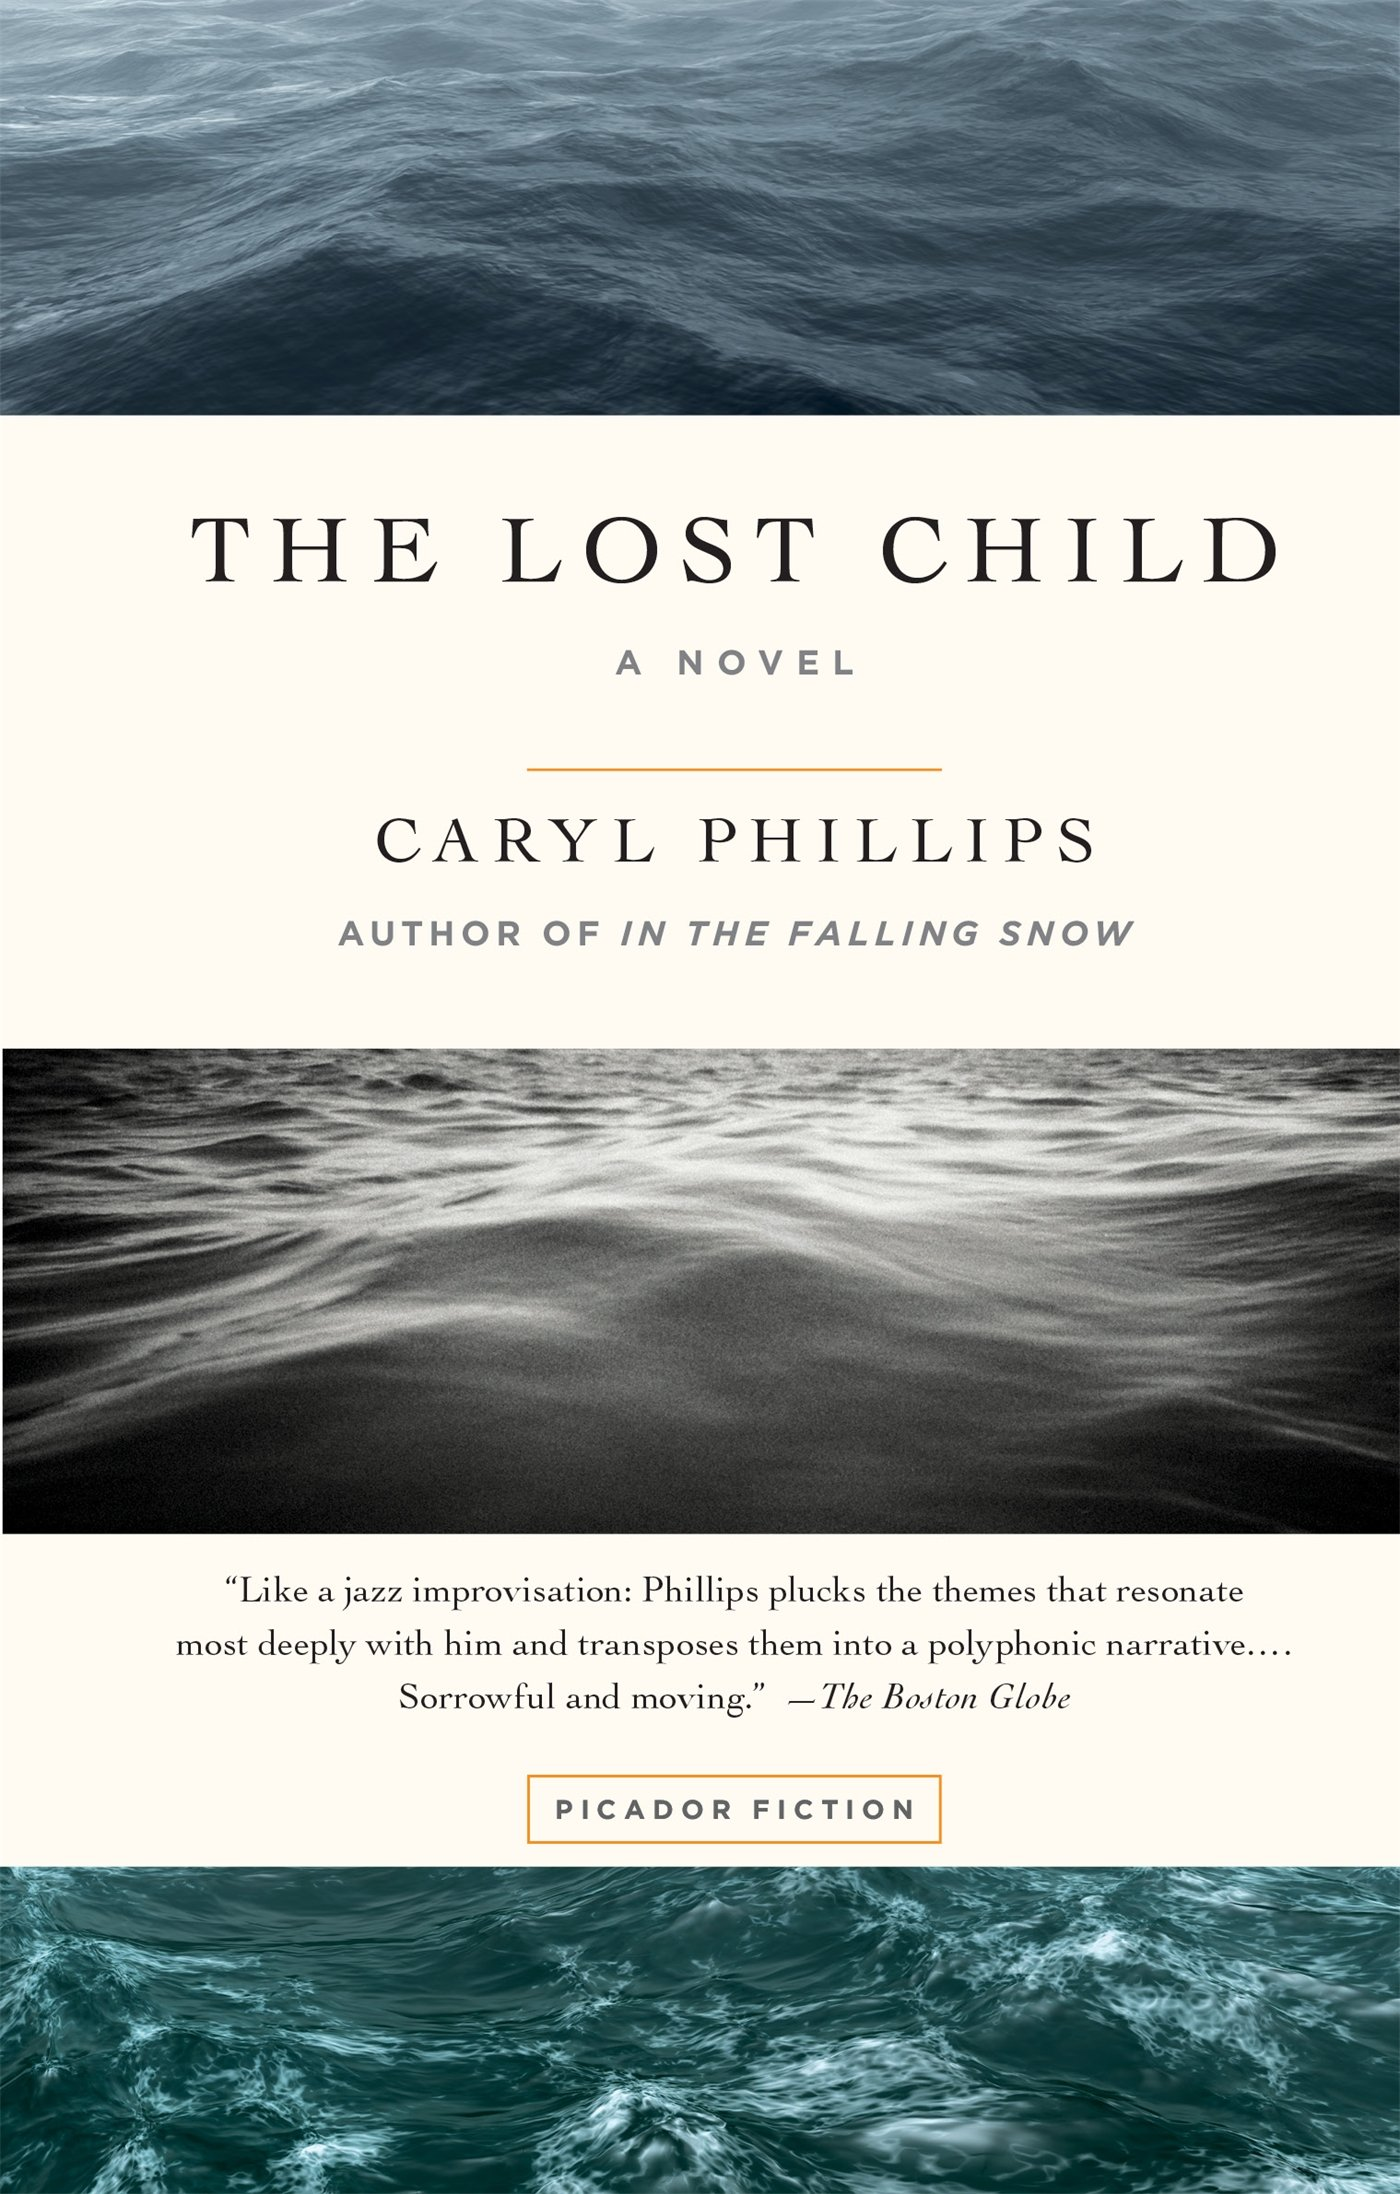 The lost child a novel caryl phillips 9781250094650 amazon the lost child a novel caryl phillips 9781250094650 amazon books fandeluxe Choice Image